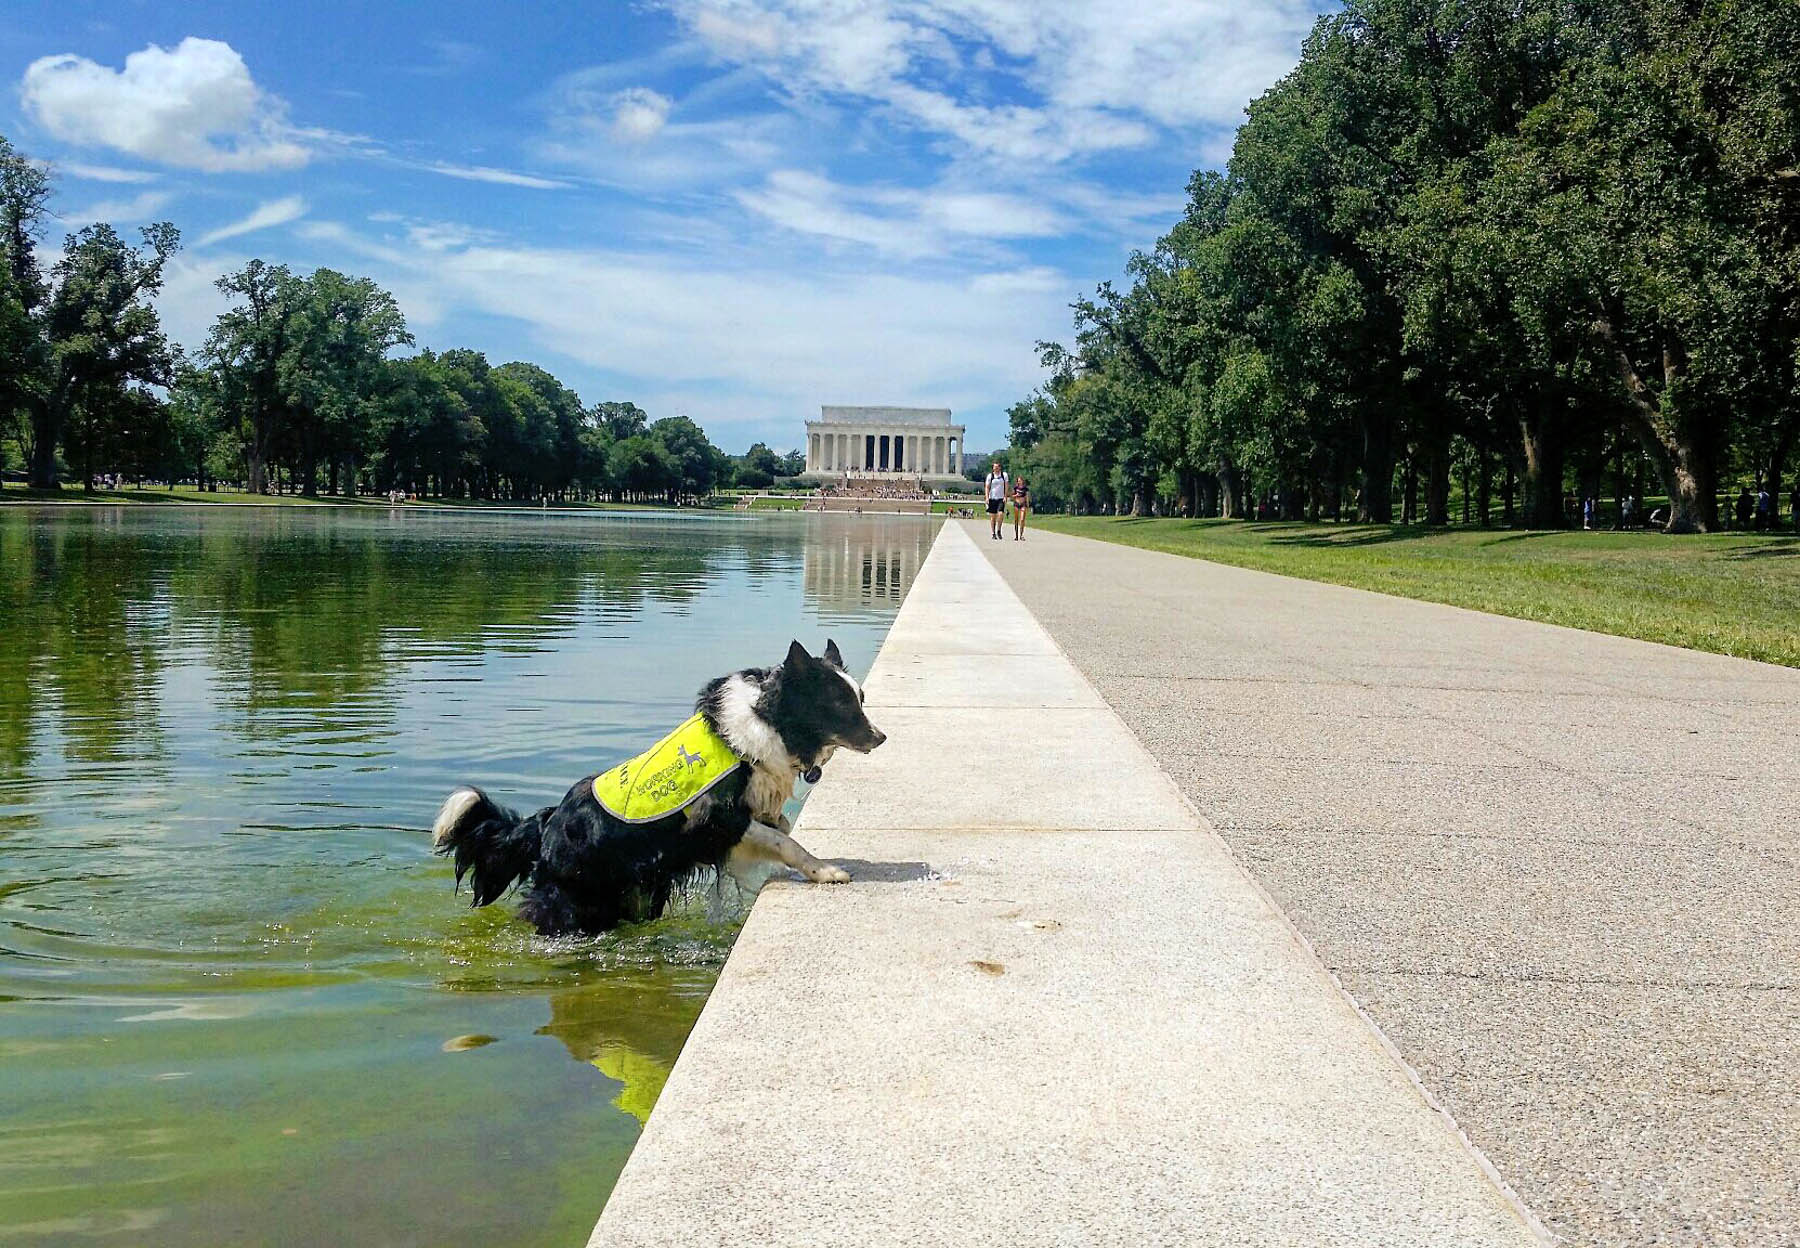 Dog climbing out of pool with Lincoln Memorial in background (Courtesy of Doug Marcks)